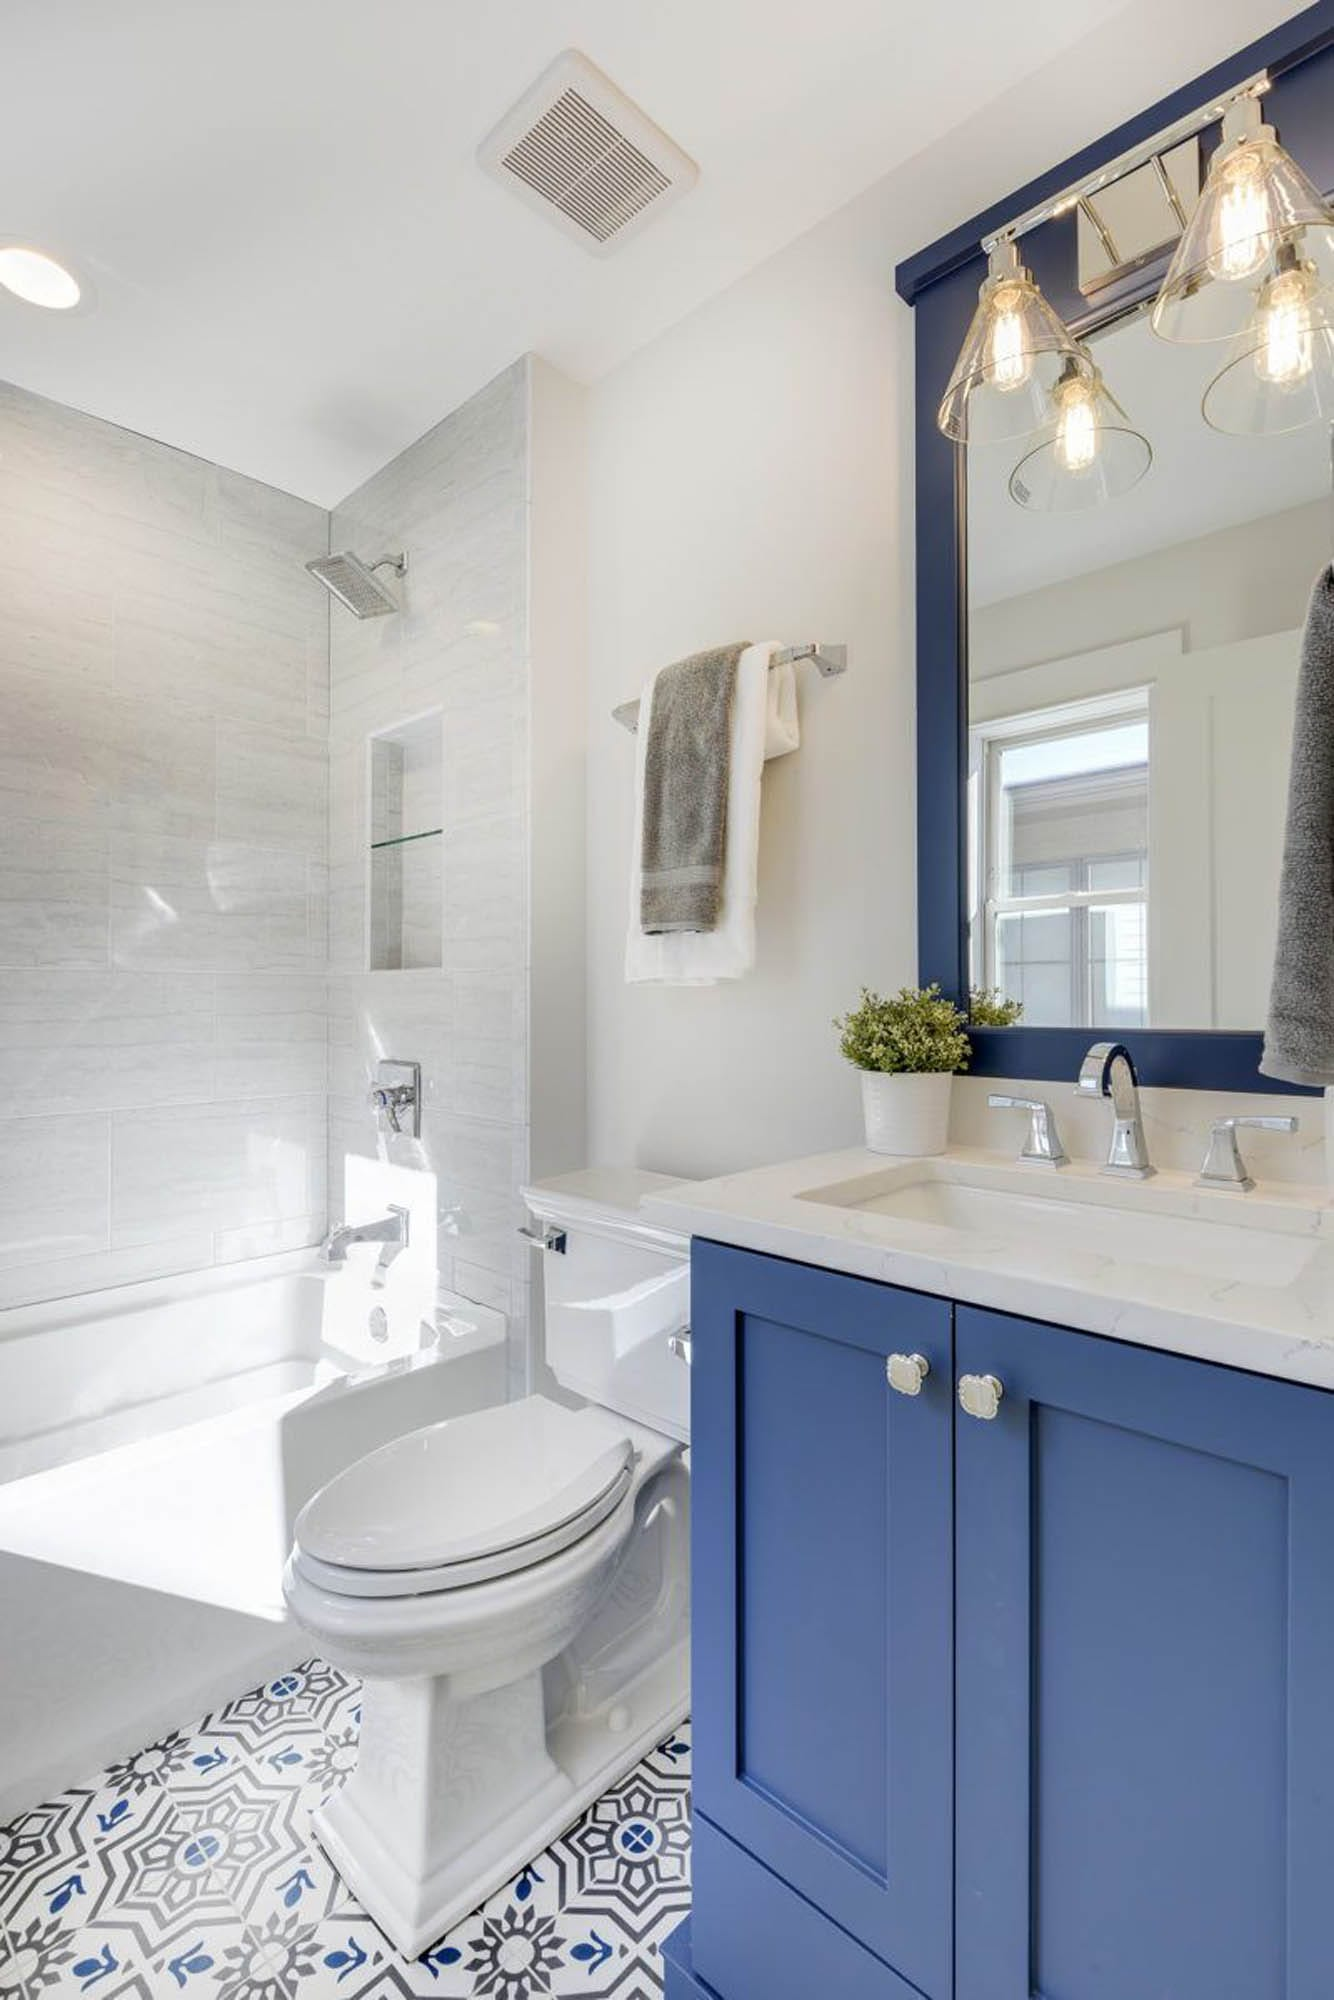 Bathroom with blue vanity cabinet